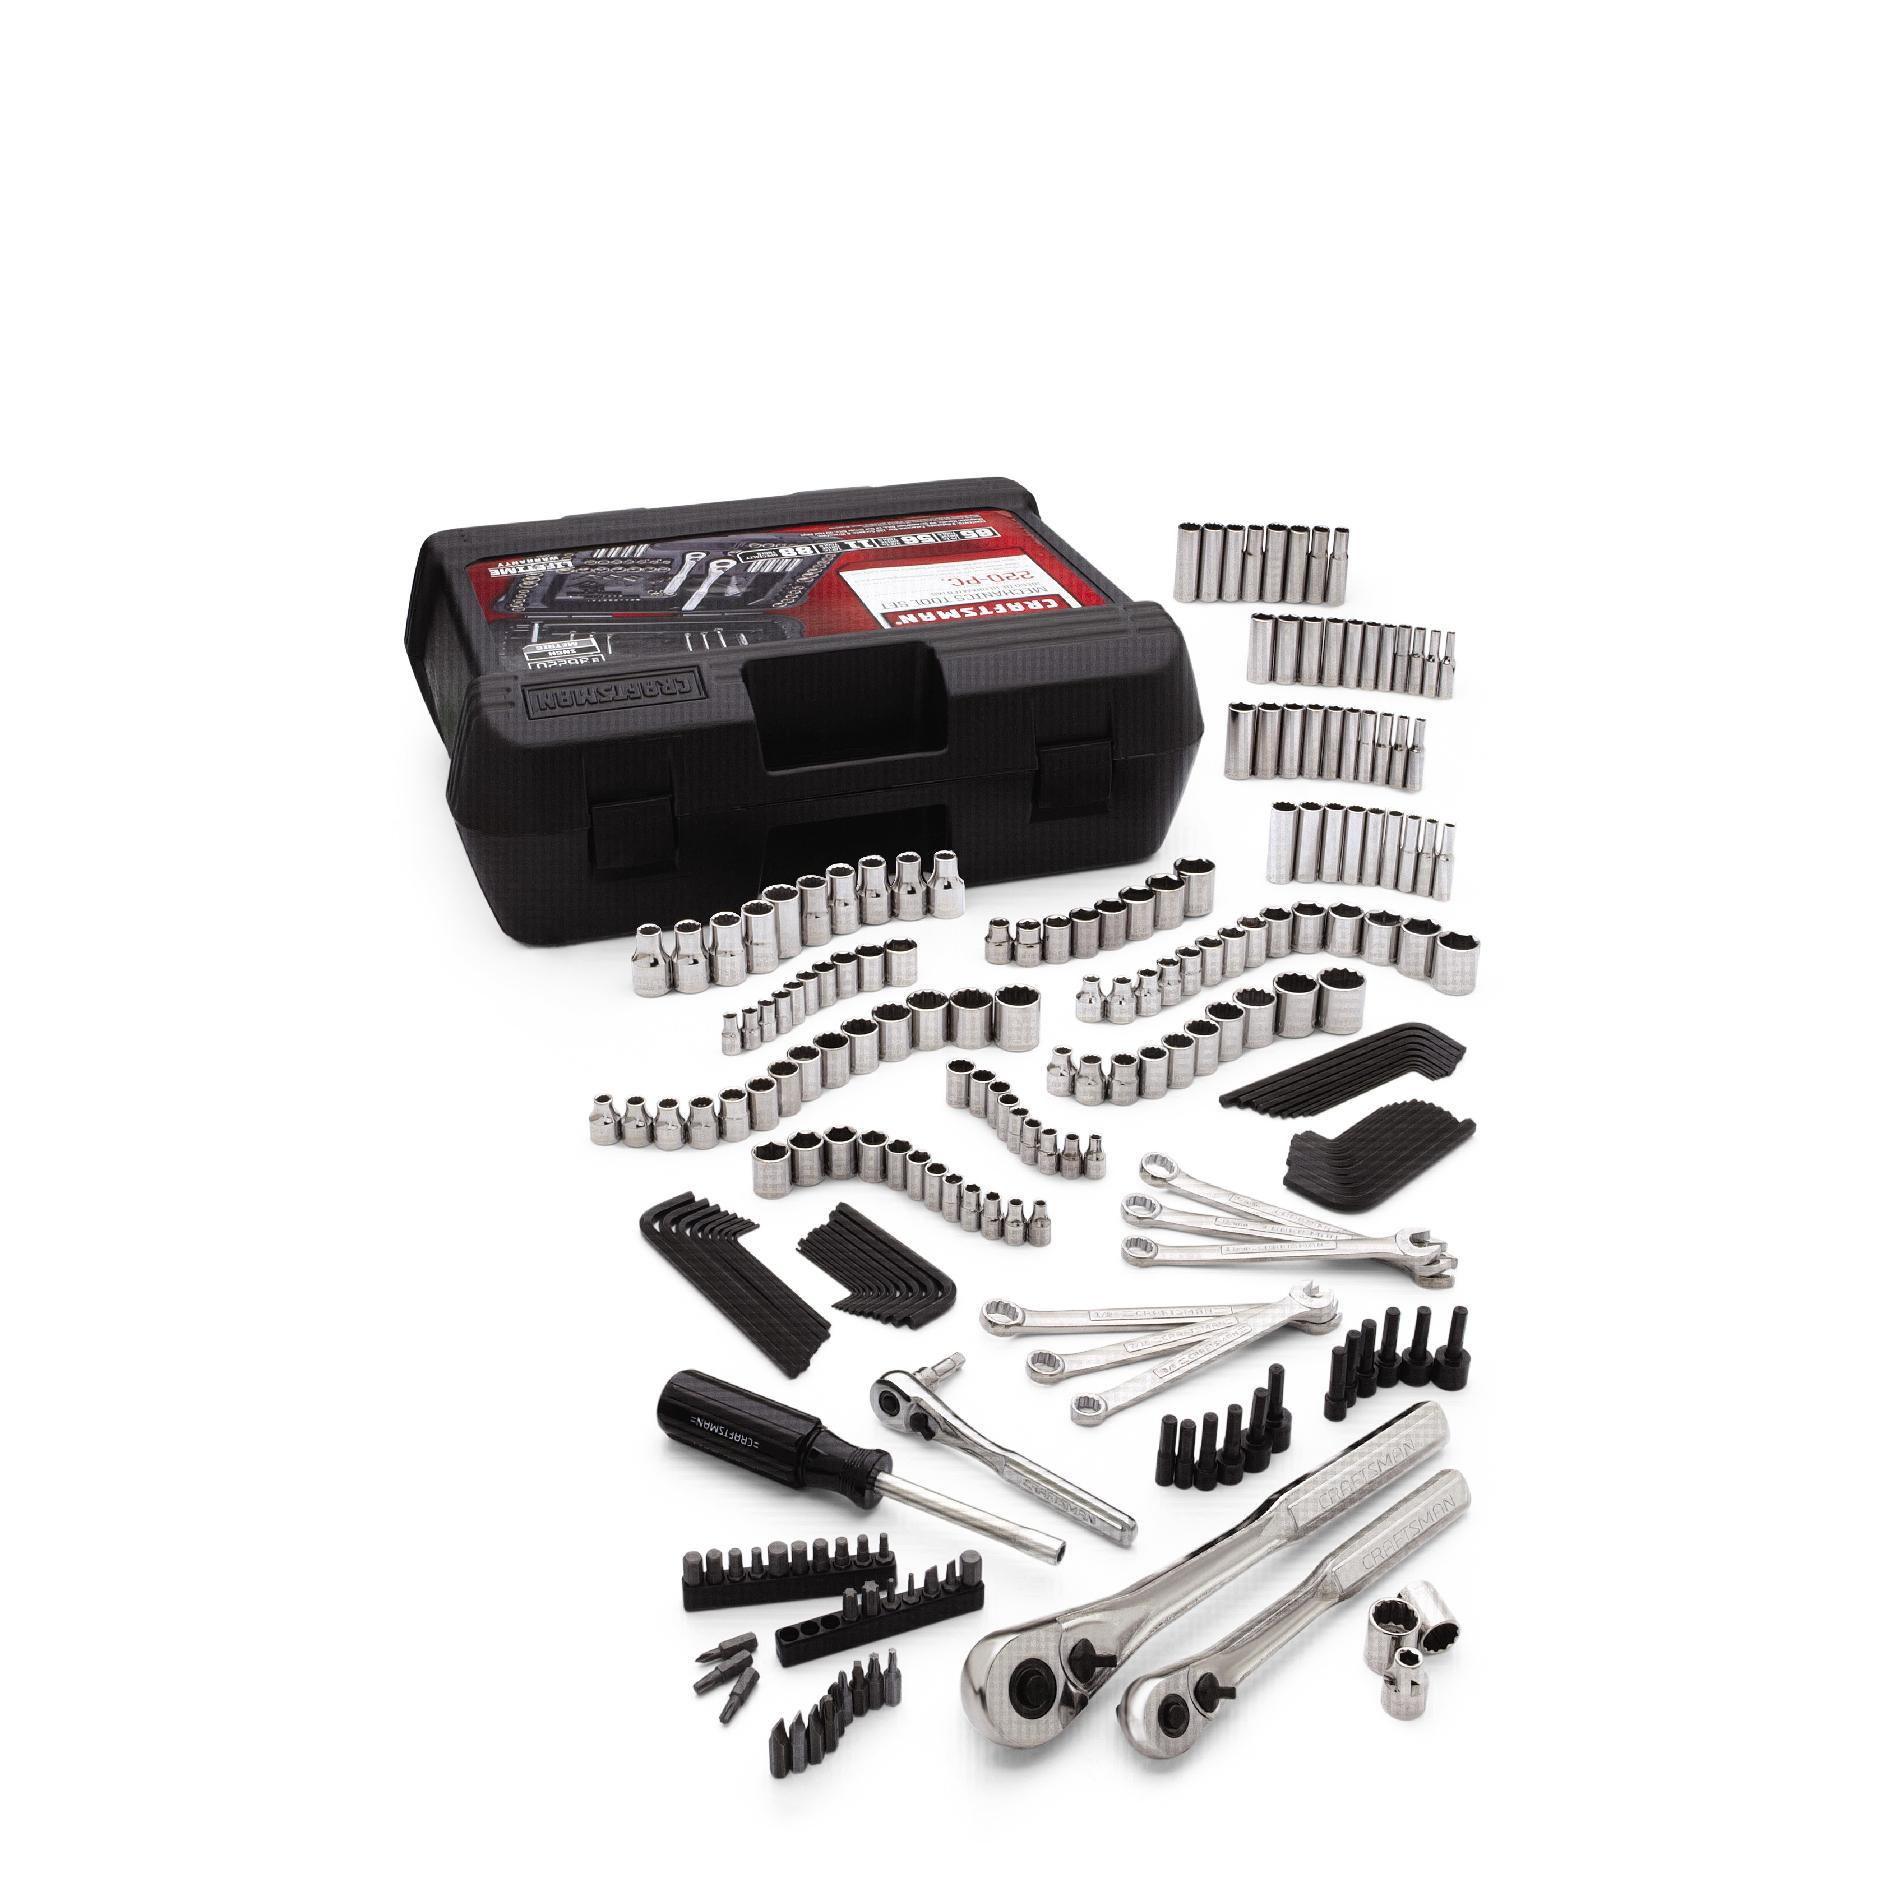 Craftsman 220pc Mechanics Tool Set with Case